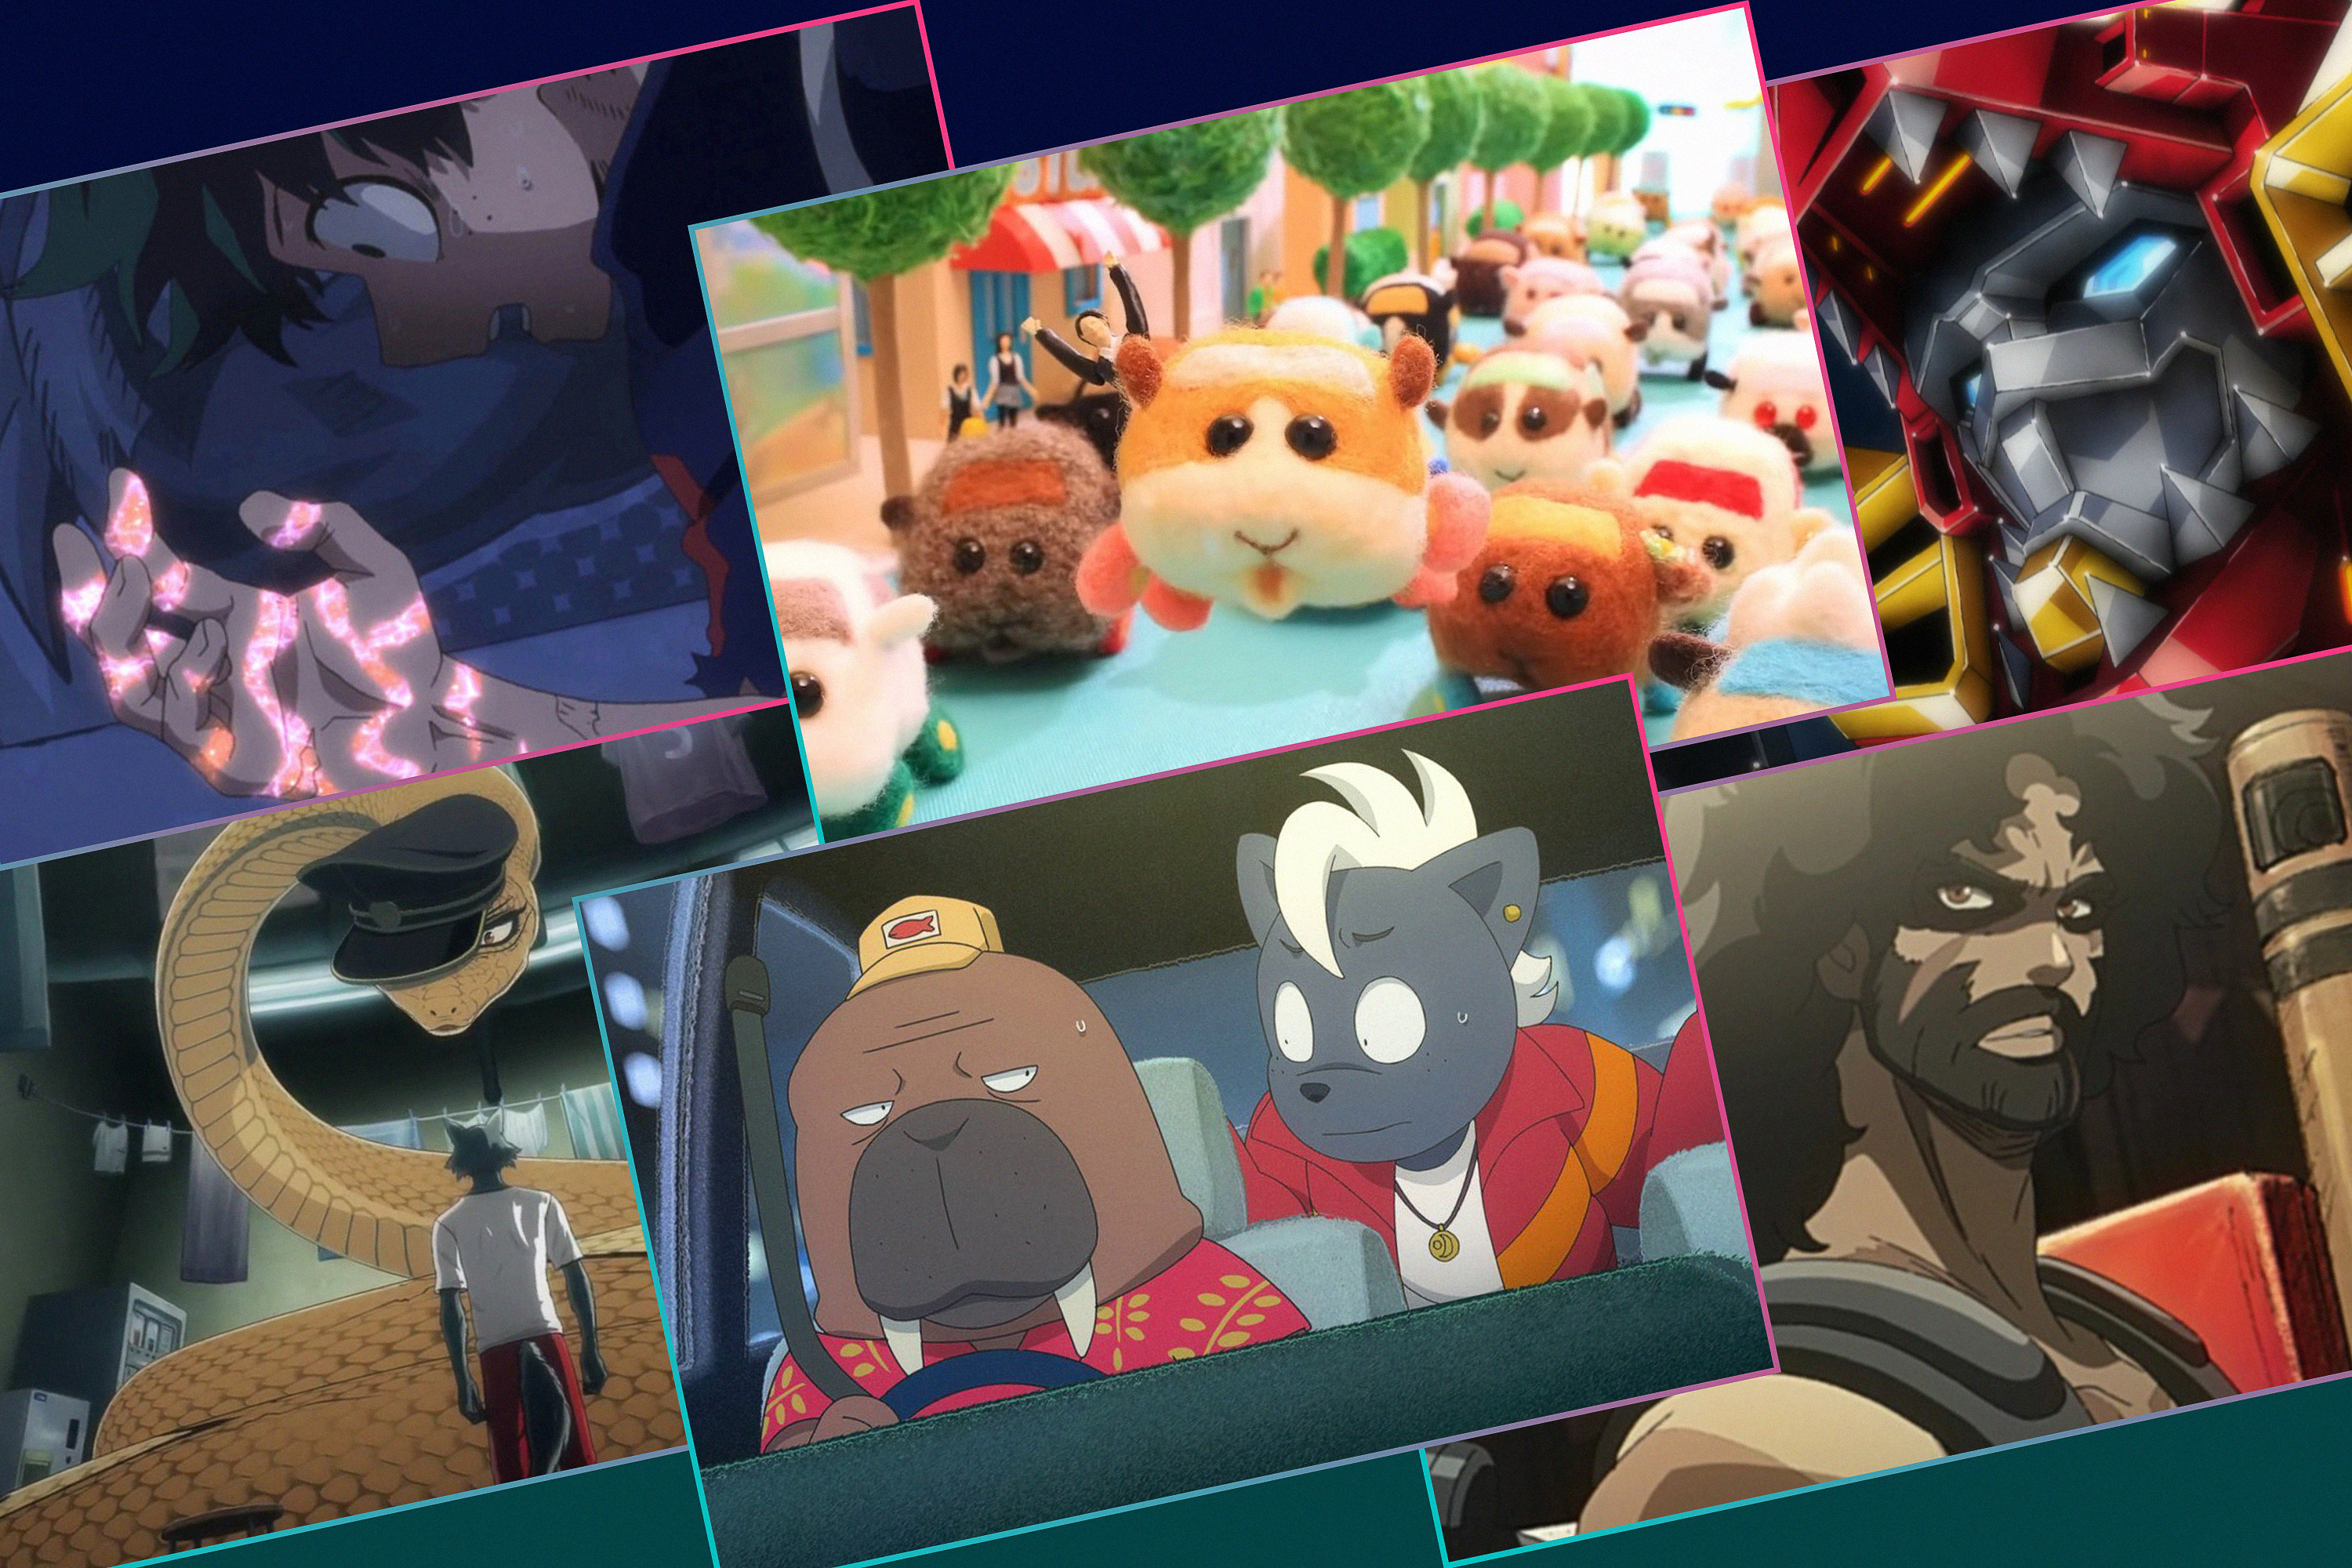 Graphic grid featuring six different images from Anime series